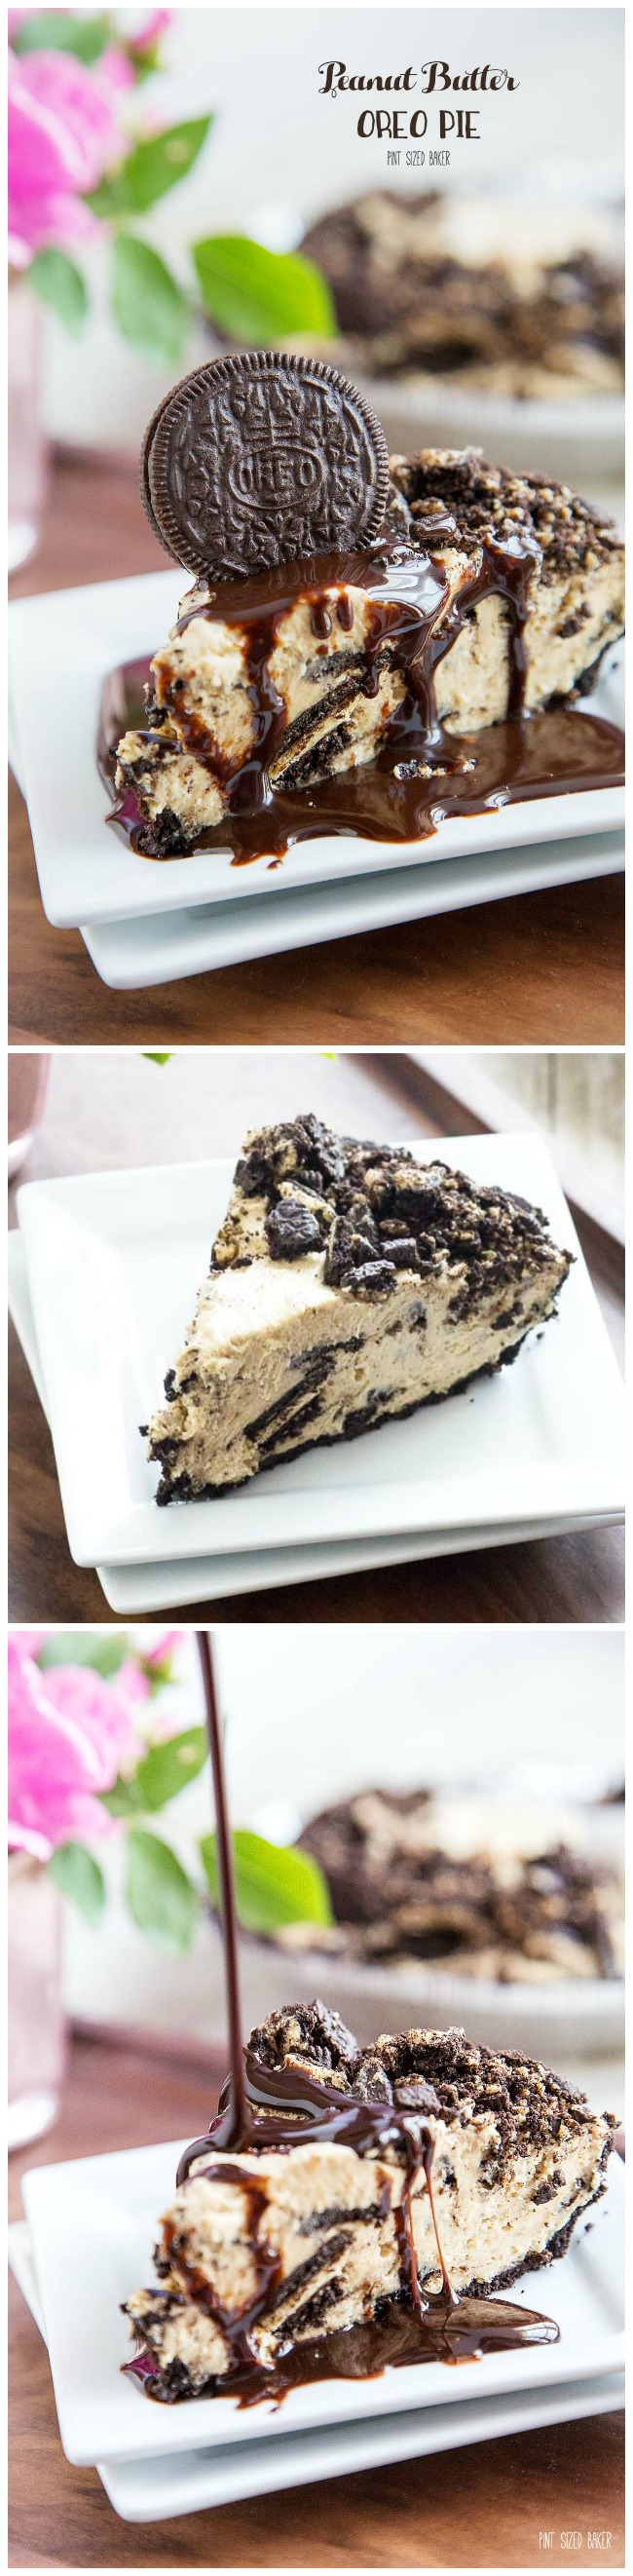 I'm making this quick and easy Peanut Butter Oreo Cookie Pie TODAY! Everyone at the party is going to love it!